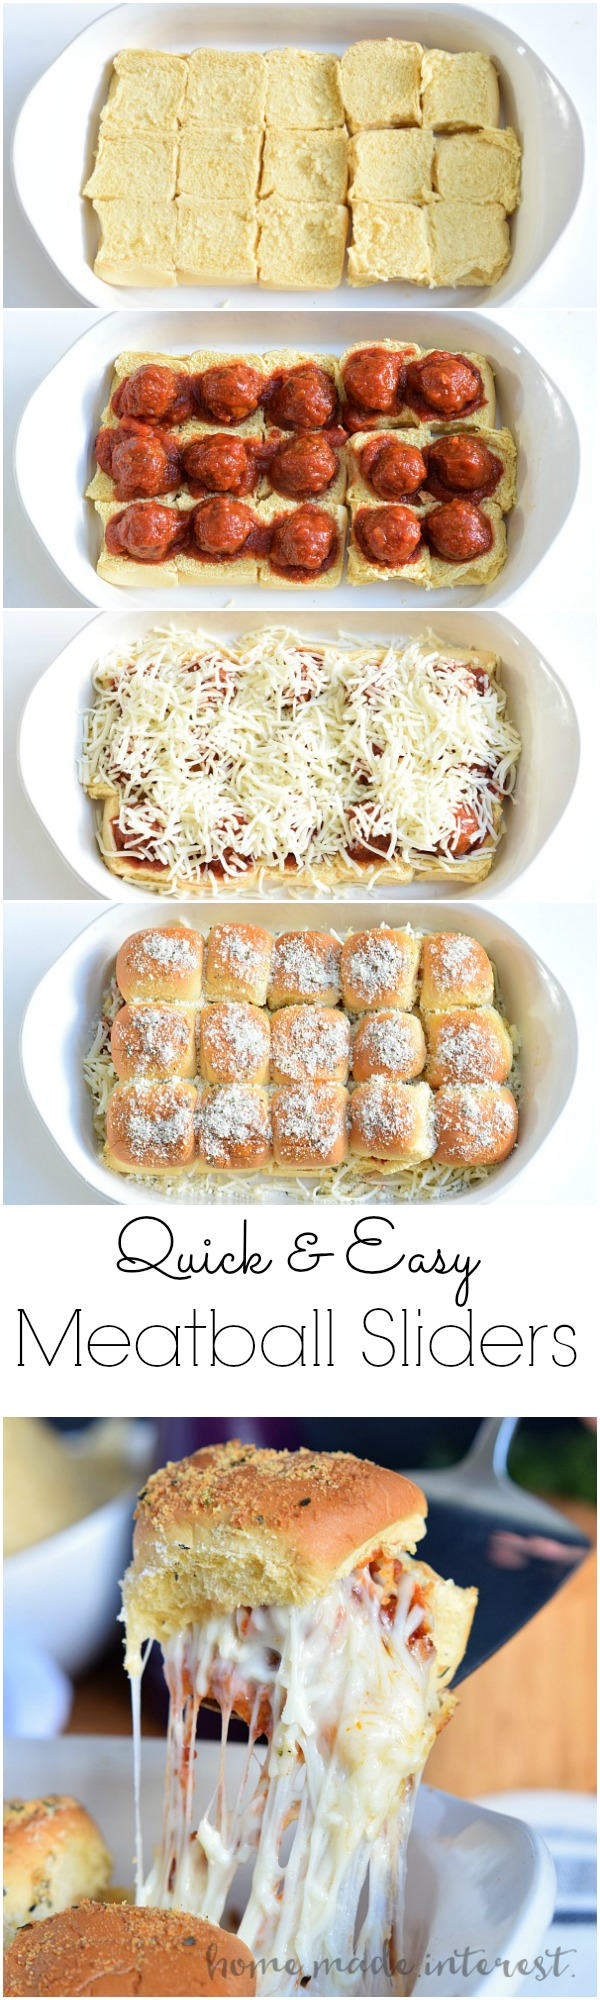 These cheesy Meatball Sliders are an easy appetizer recipe that the whole family will love.